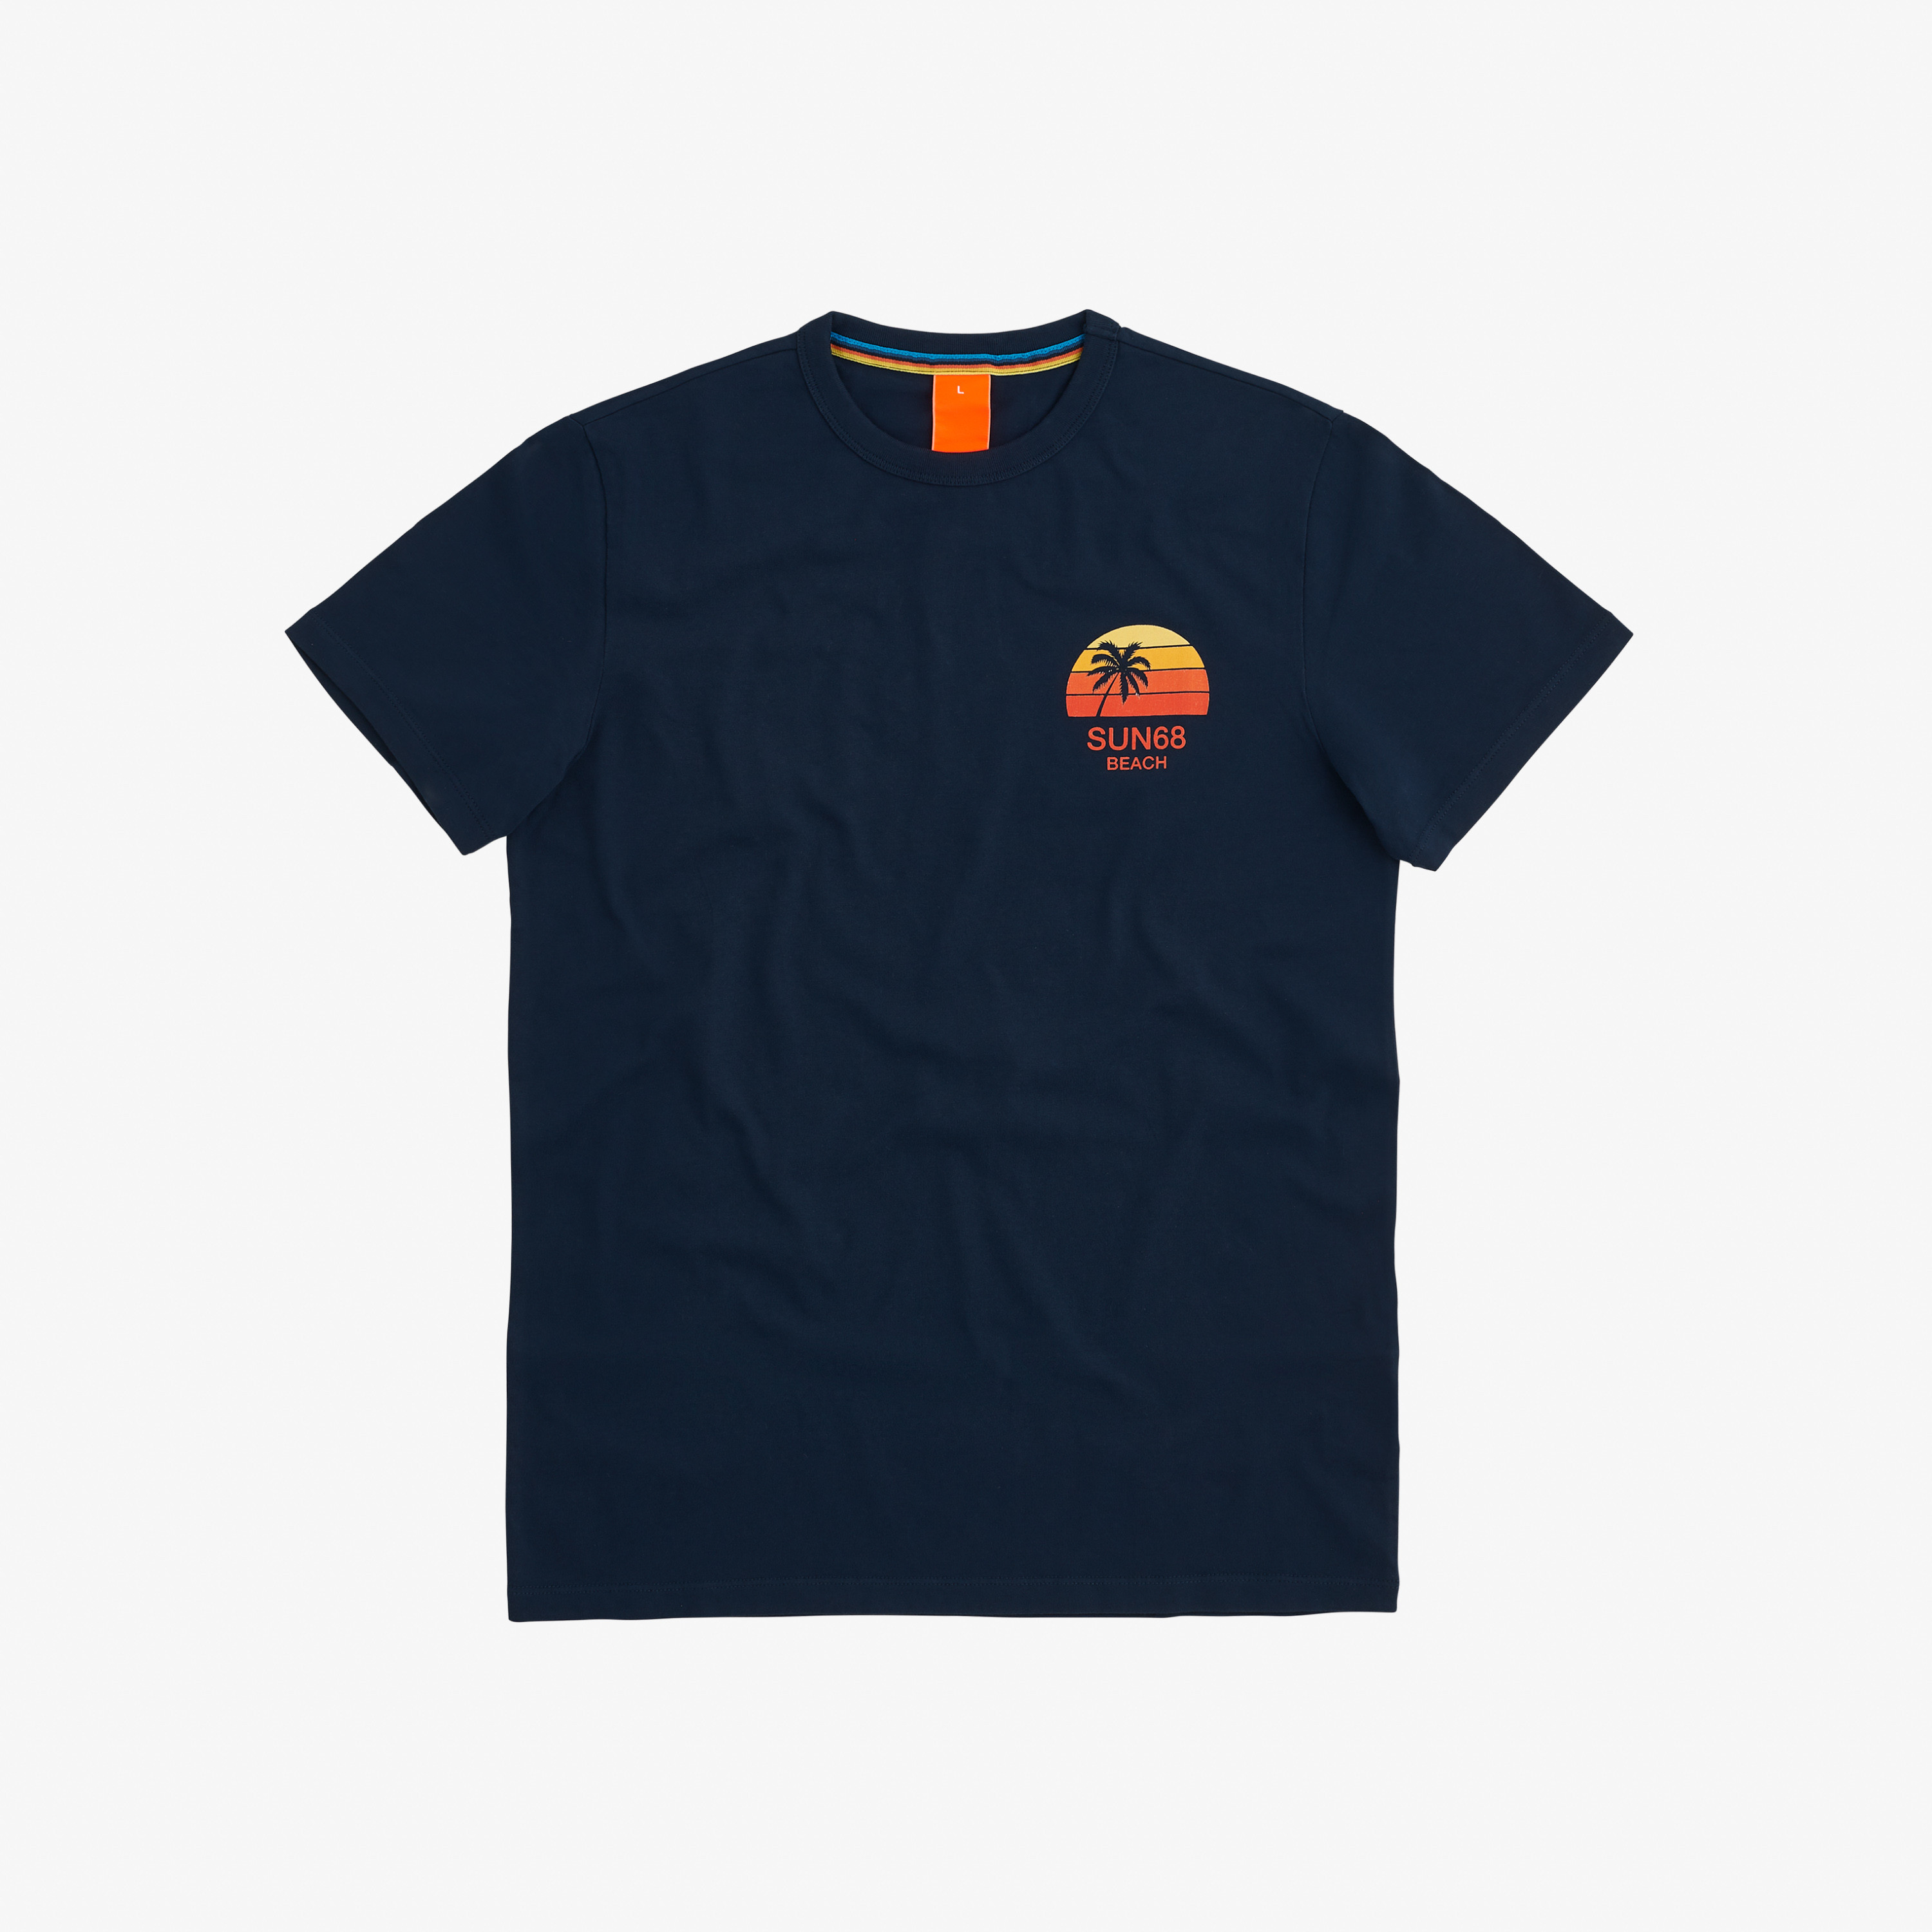 T-SHIRT BIG LOGO PRINT ON CHEST NAVY BLUE